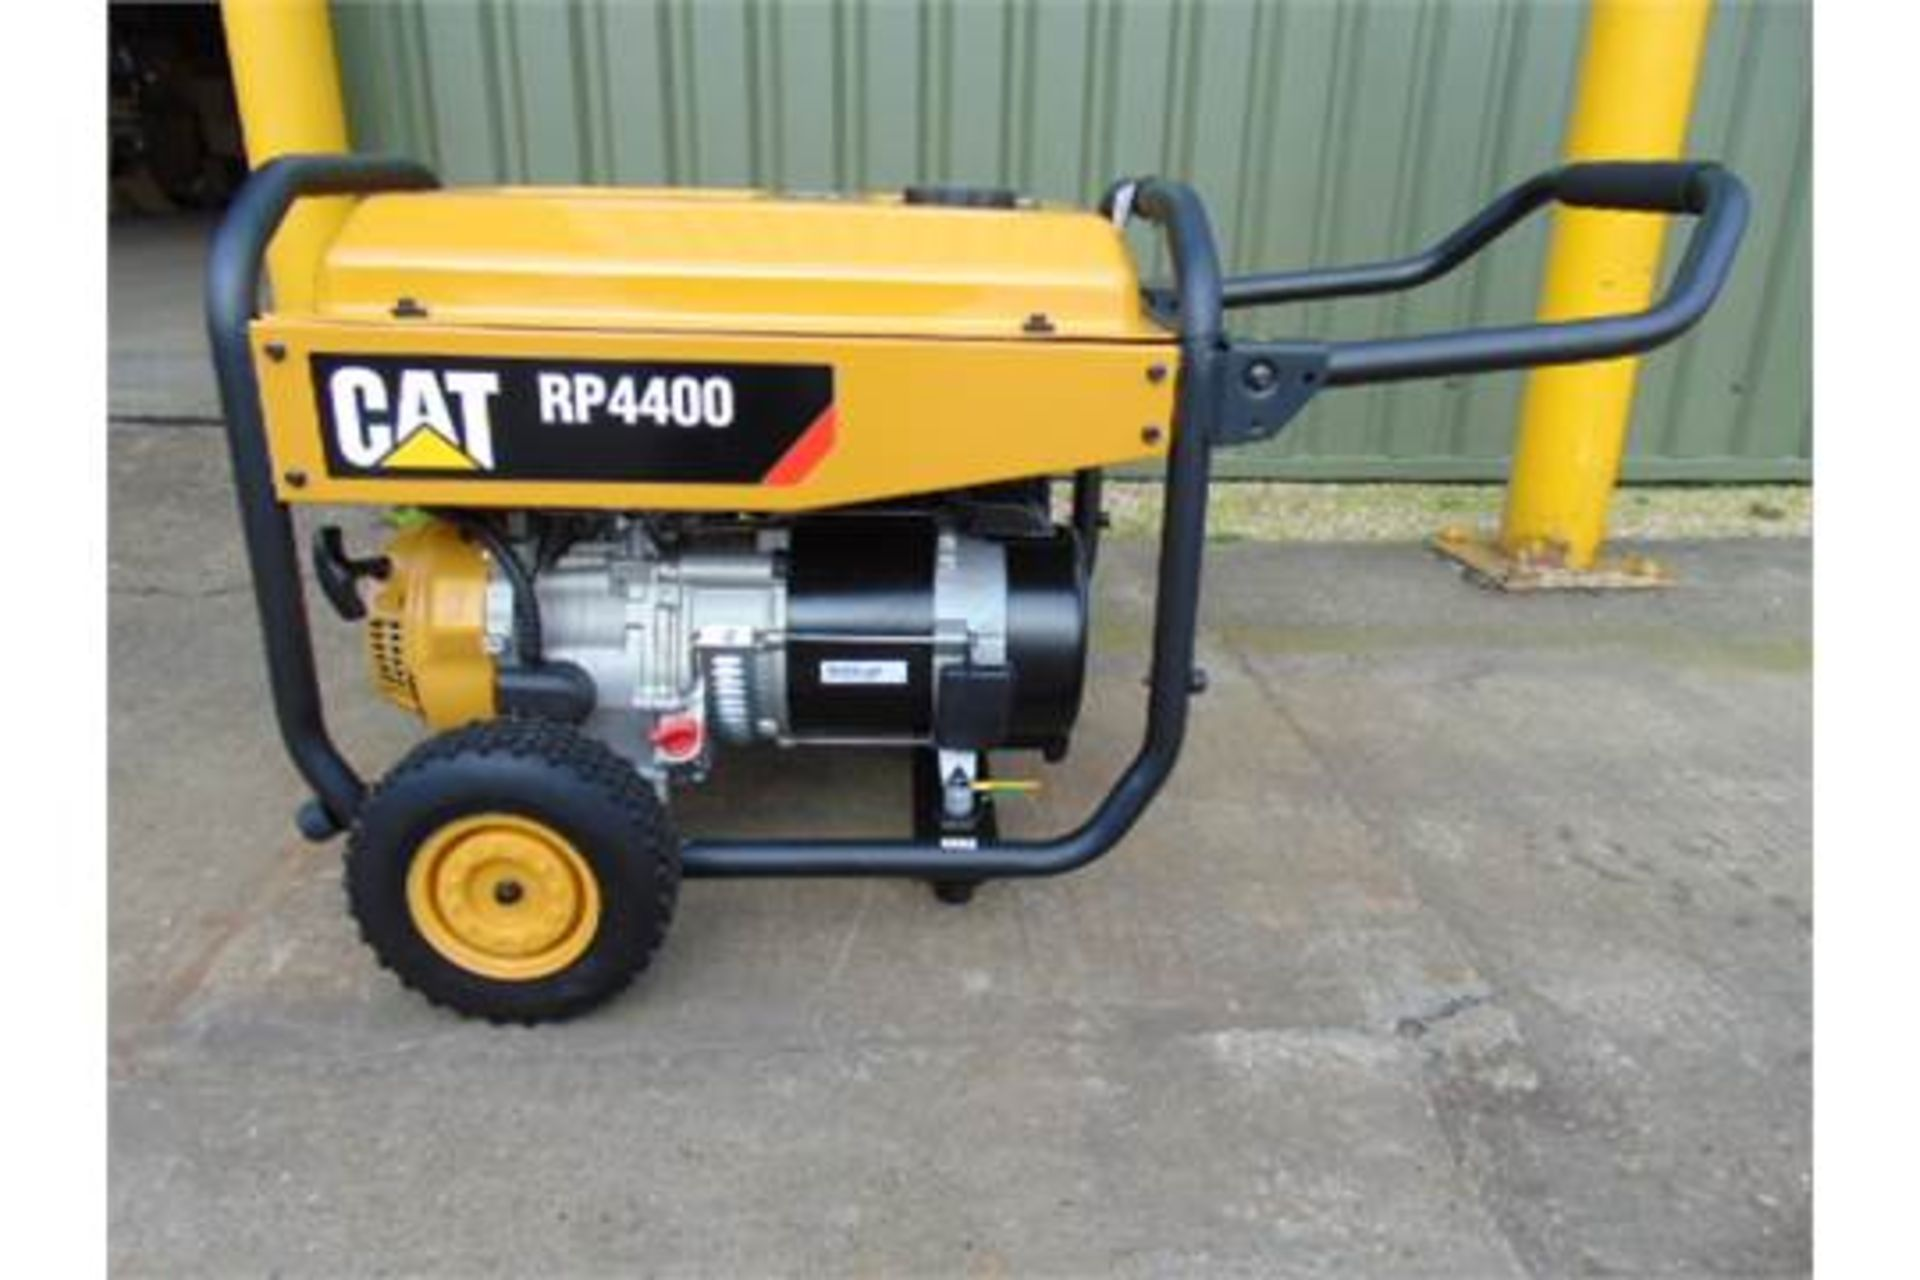 Lot 12 - UNISSUED Caterpillar RP4400 Industrial Petrol Generator Set